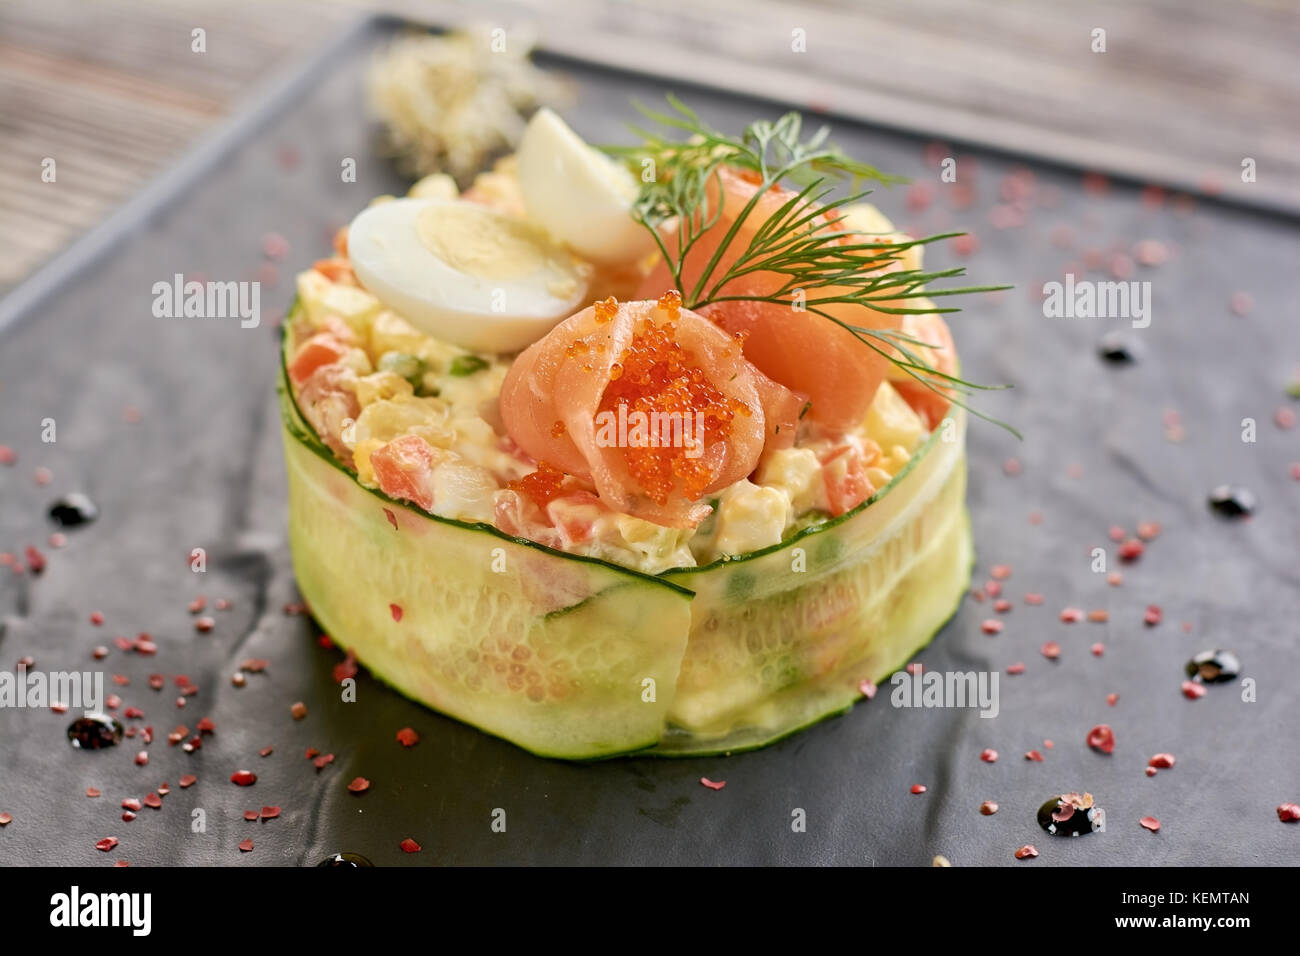 Olivier salad with salmon and tobiko caviar. Tasty olivier salad served with salmon, tobiko caviar, dill and eggs. - Stock Image